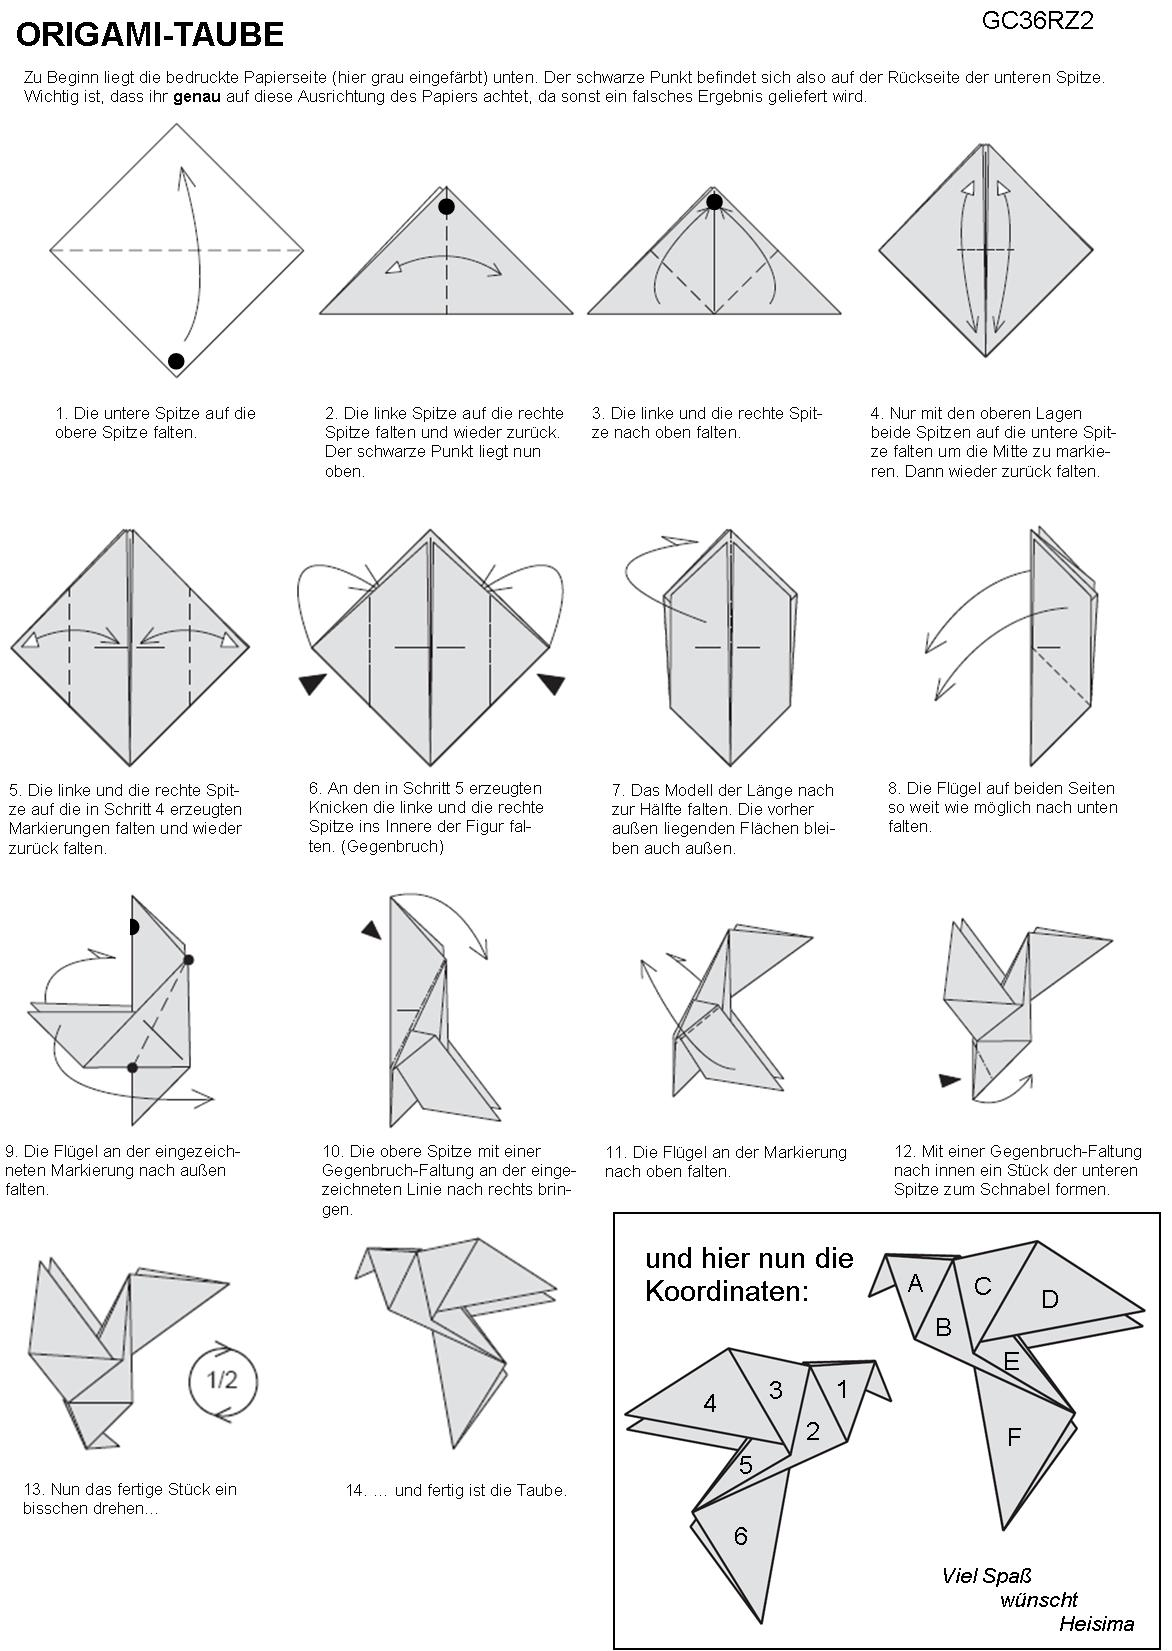 1000 images about scraps of graphics origami on pinterest. Black Bedroom Furniture Sets. Home Design Ideas